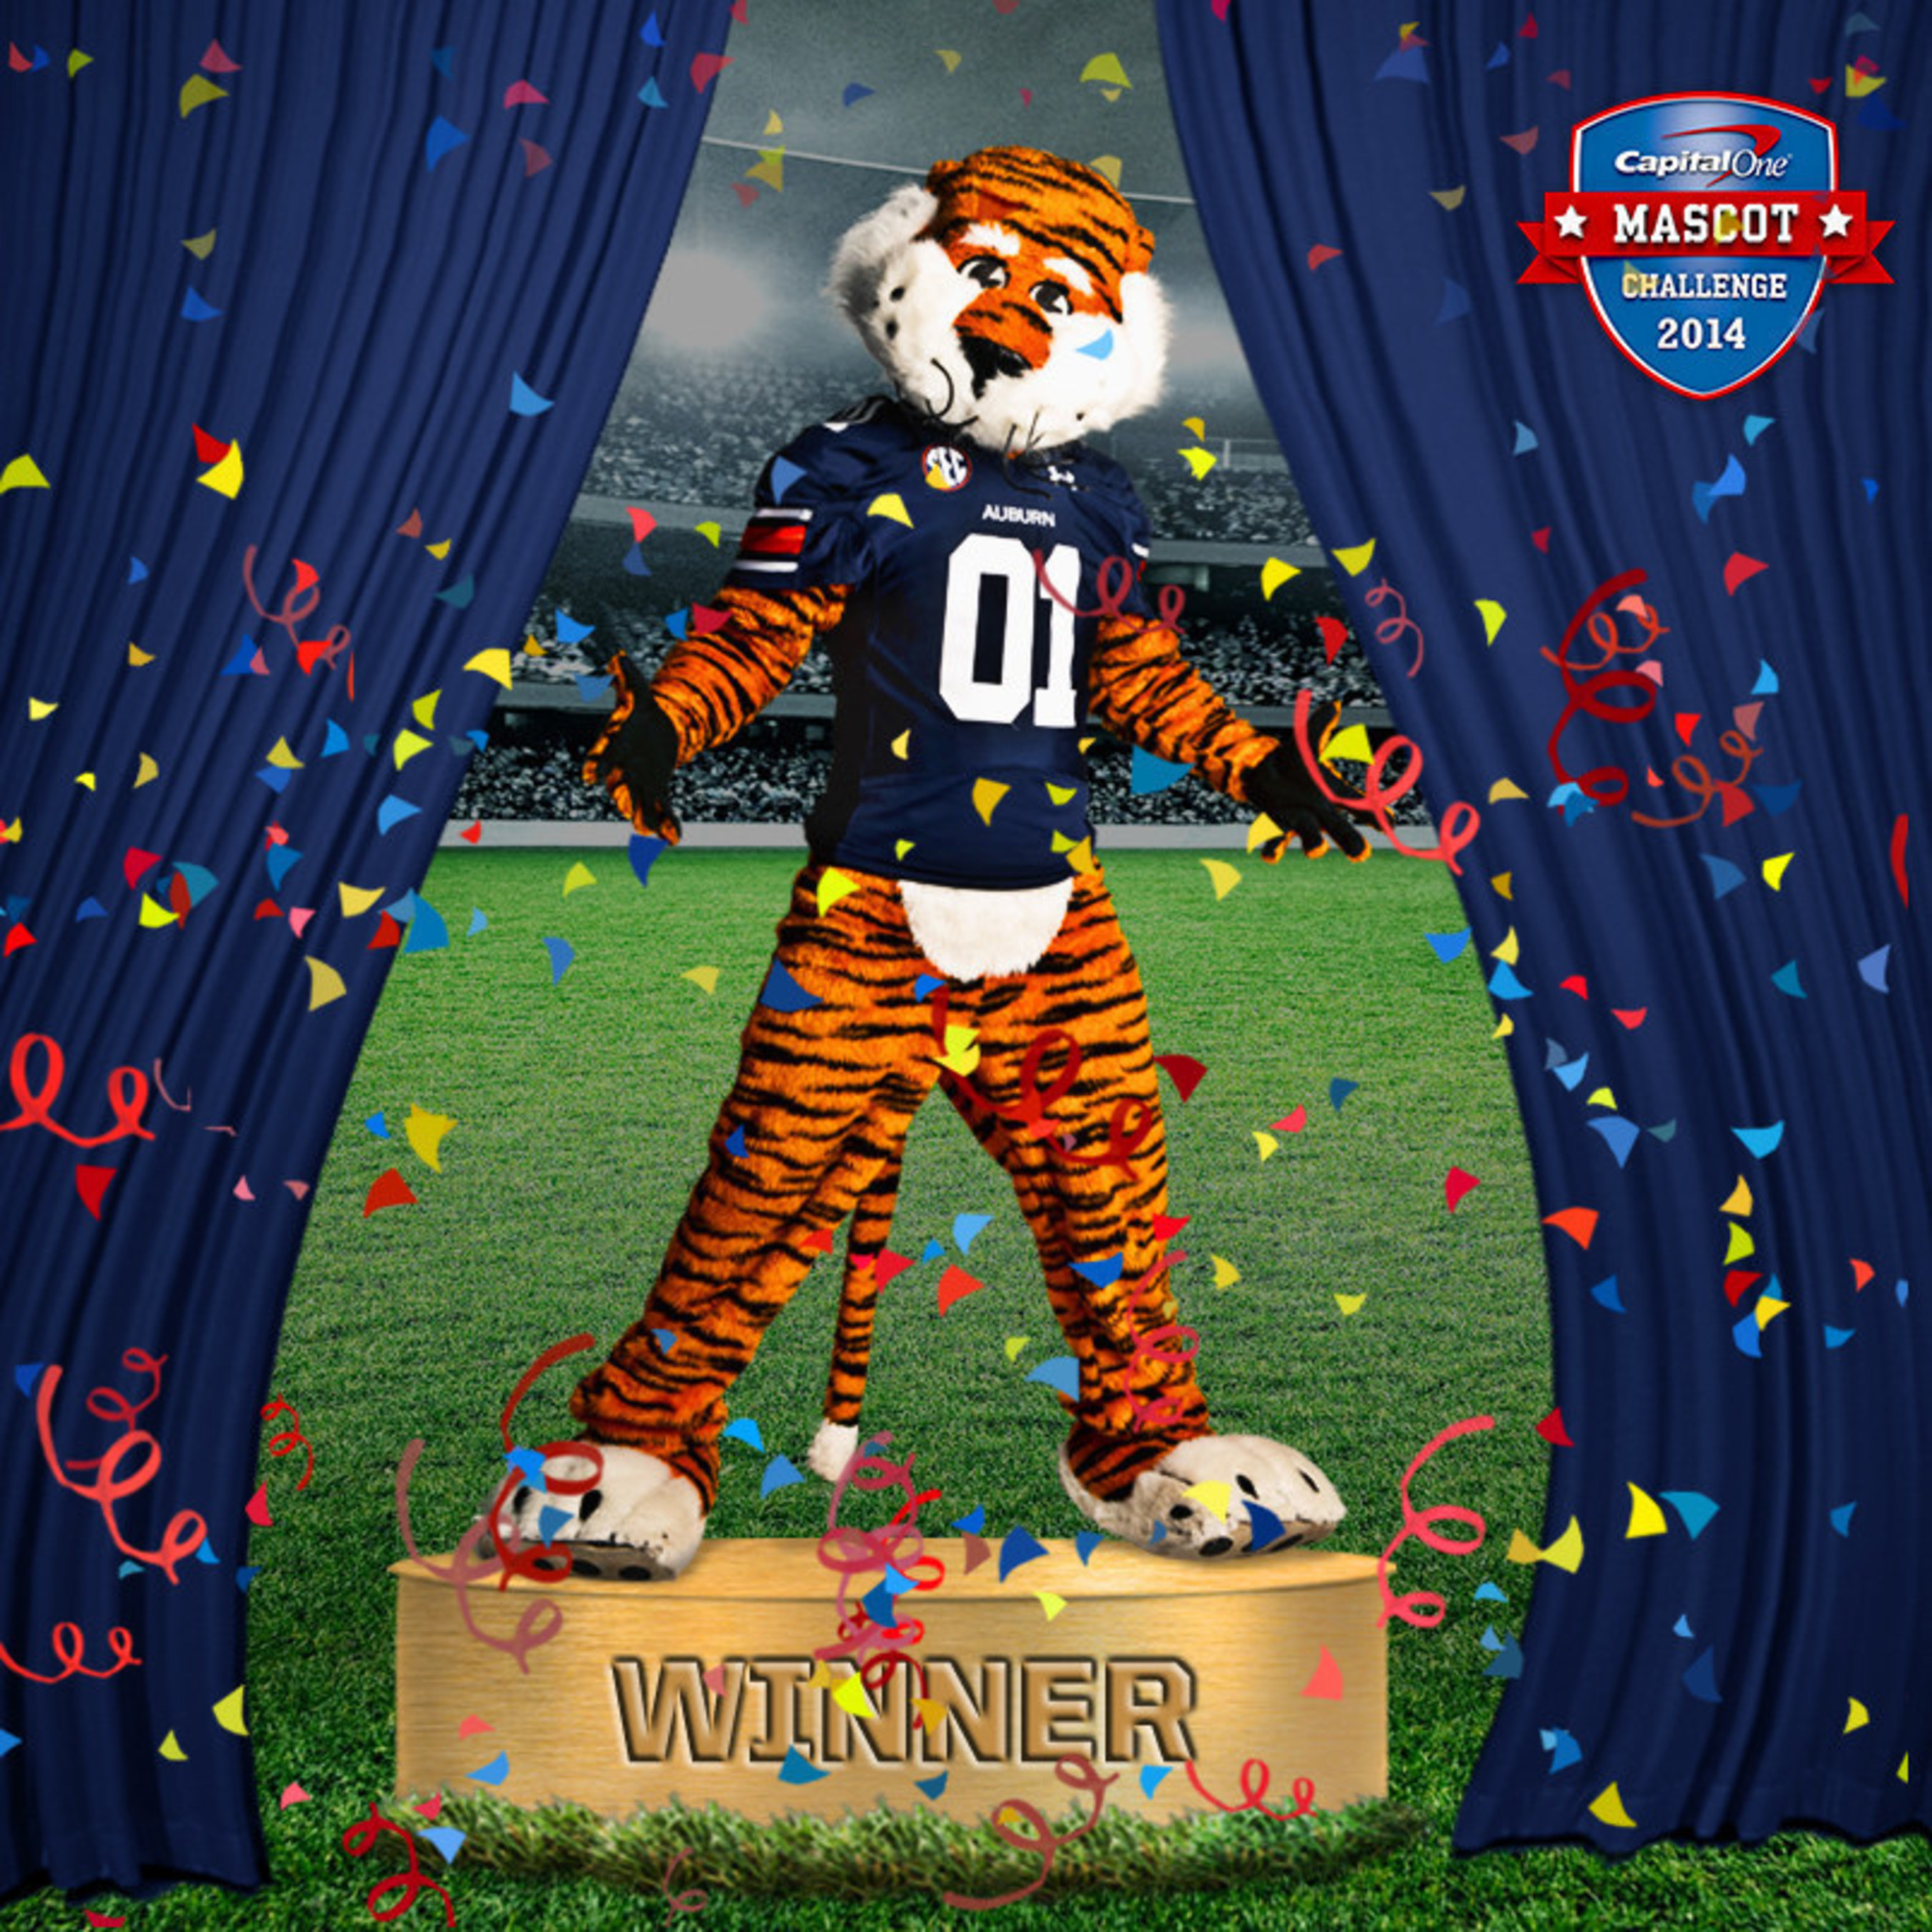 Auburn's Aubie the Tiger earned his champion stripes by clawing his way past UCLA's Joe Bruin in the 2014 Capital One Mascot Challenge finale. As the newly crowned Capital One National Mascot of the Year(R), Aubie will receive $20,000 toward Auburn's mascot program and legendary status as one of the rare mascots to finish the competition with a perfect 15-0 record.